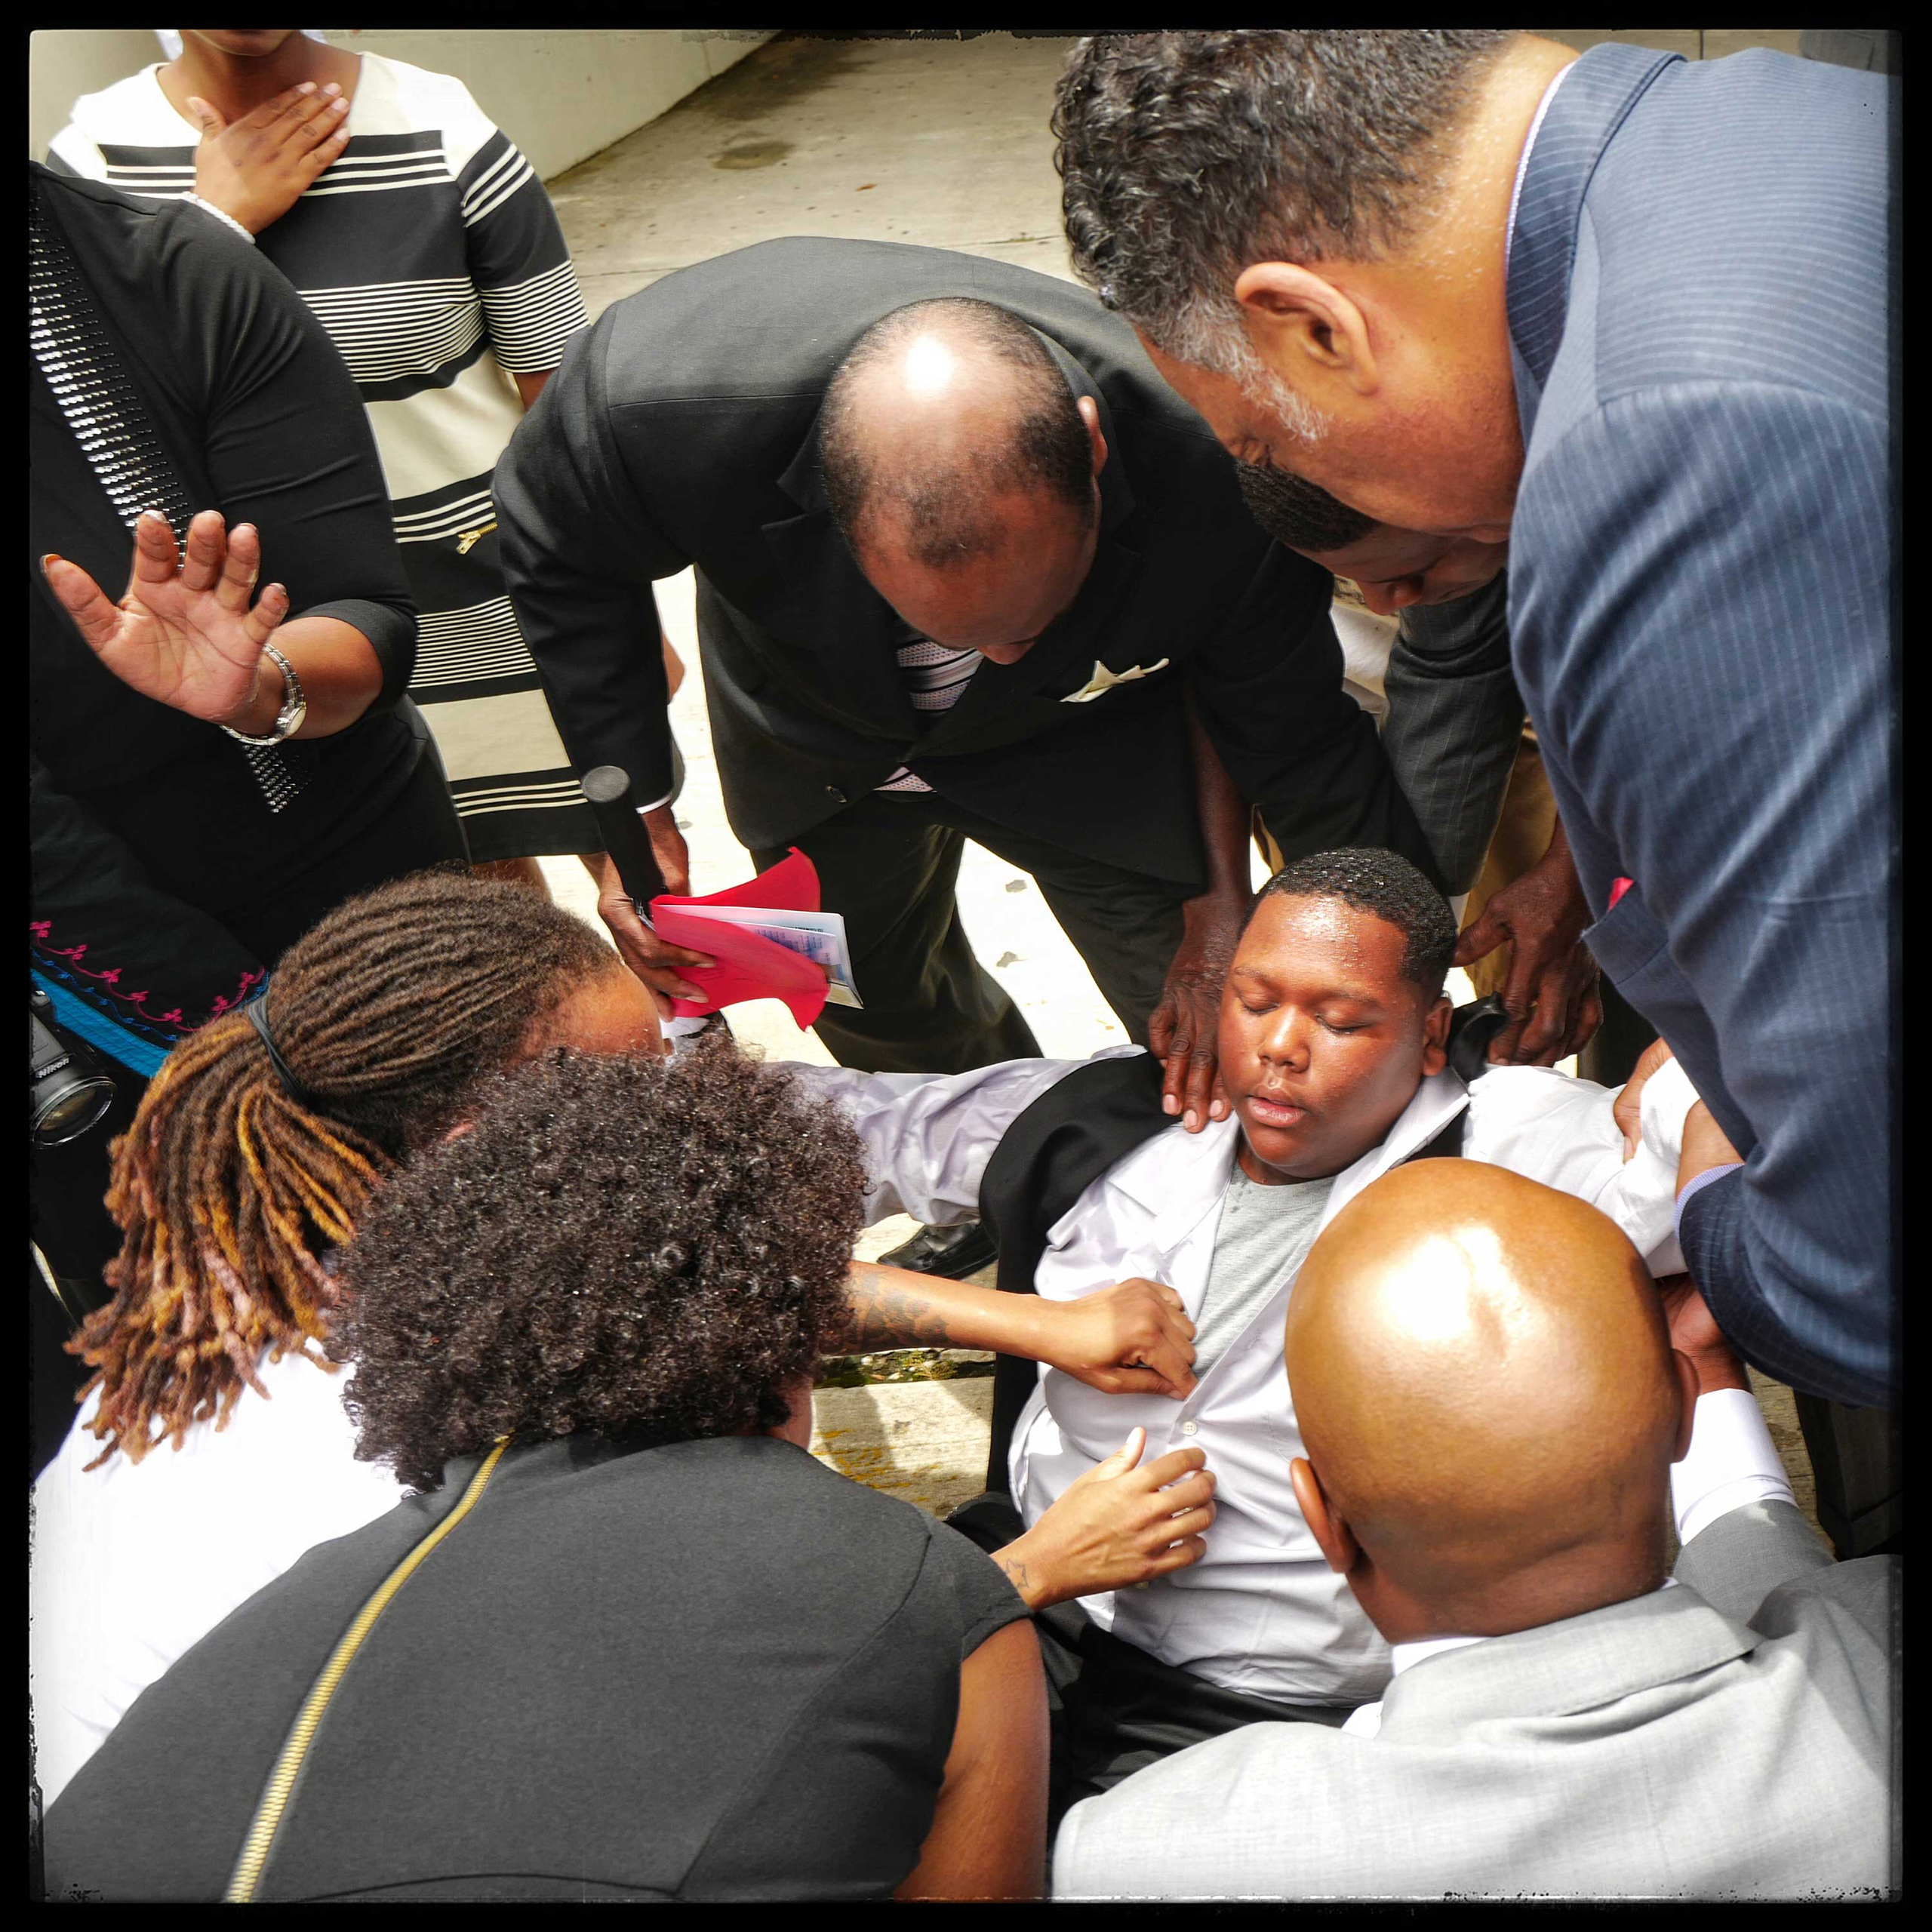 Baton Rouge, LA: Fifteen-year-old Cameron Sterling   collapses                               outside the church. He is led out of the funeral of his father, Alton                               Sterling, accompanied by the Rev. Jesse Jackson Sr. The funeral was held at                               the Southern University A&M College on July 15, 2016.